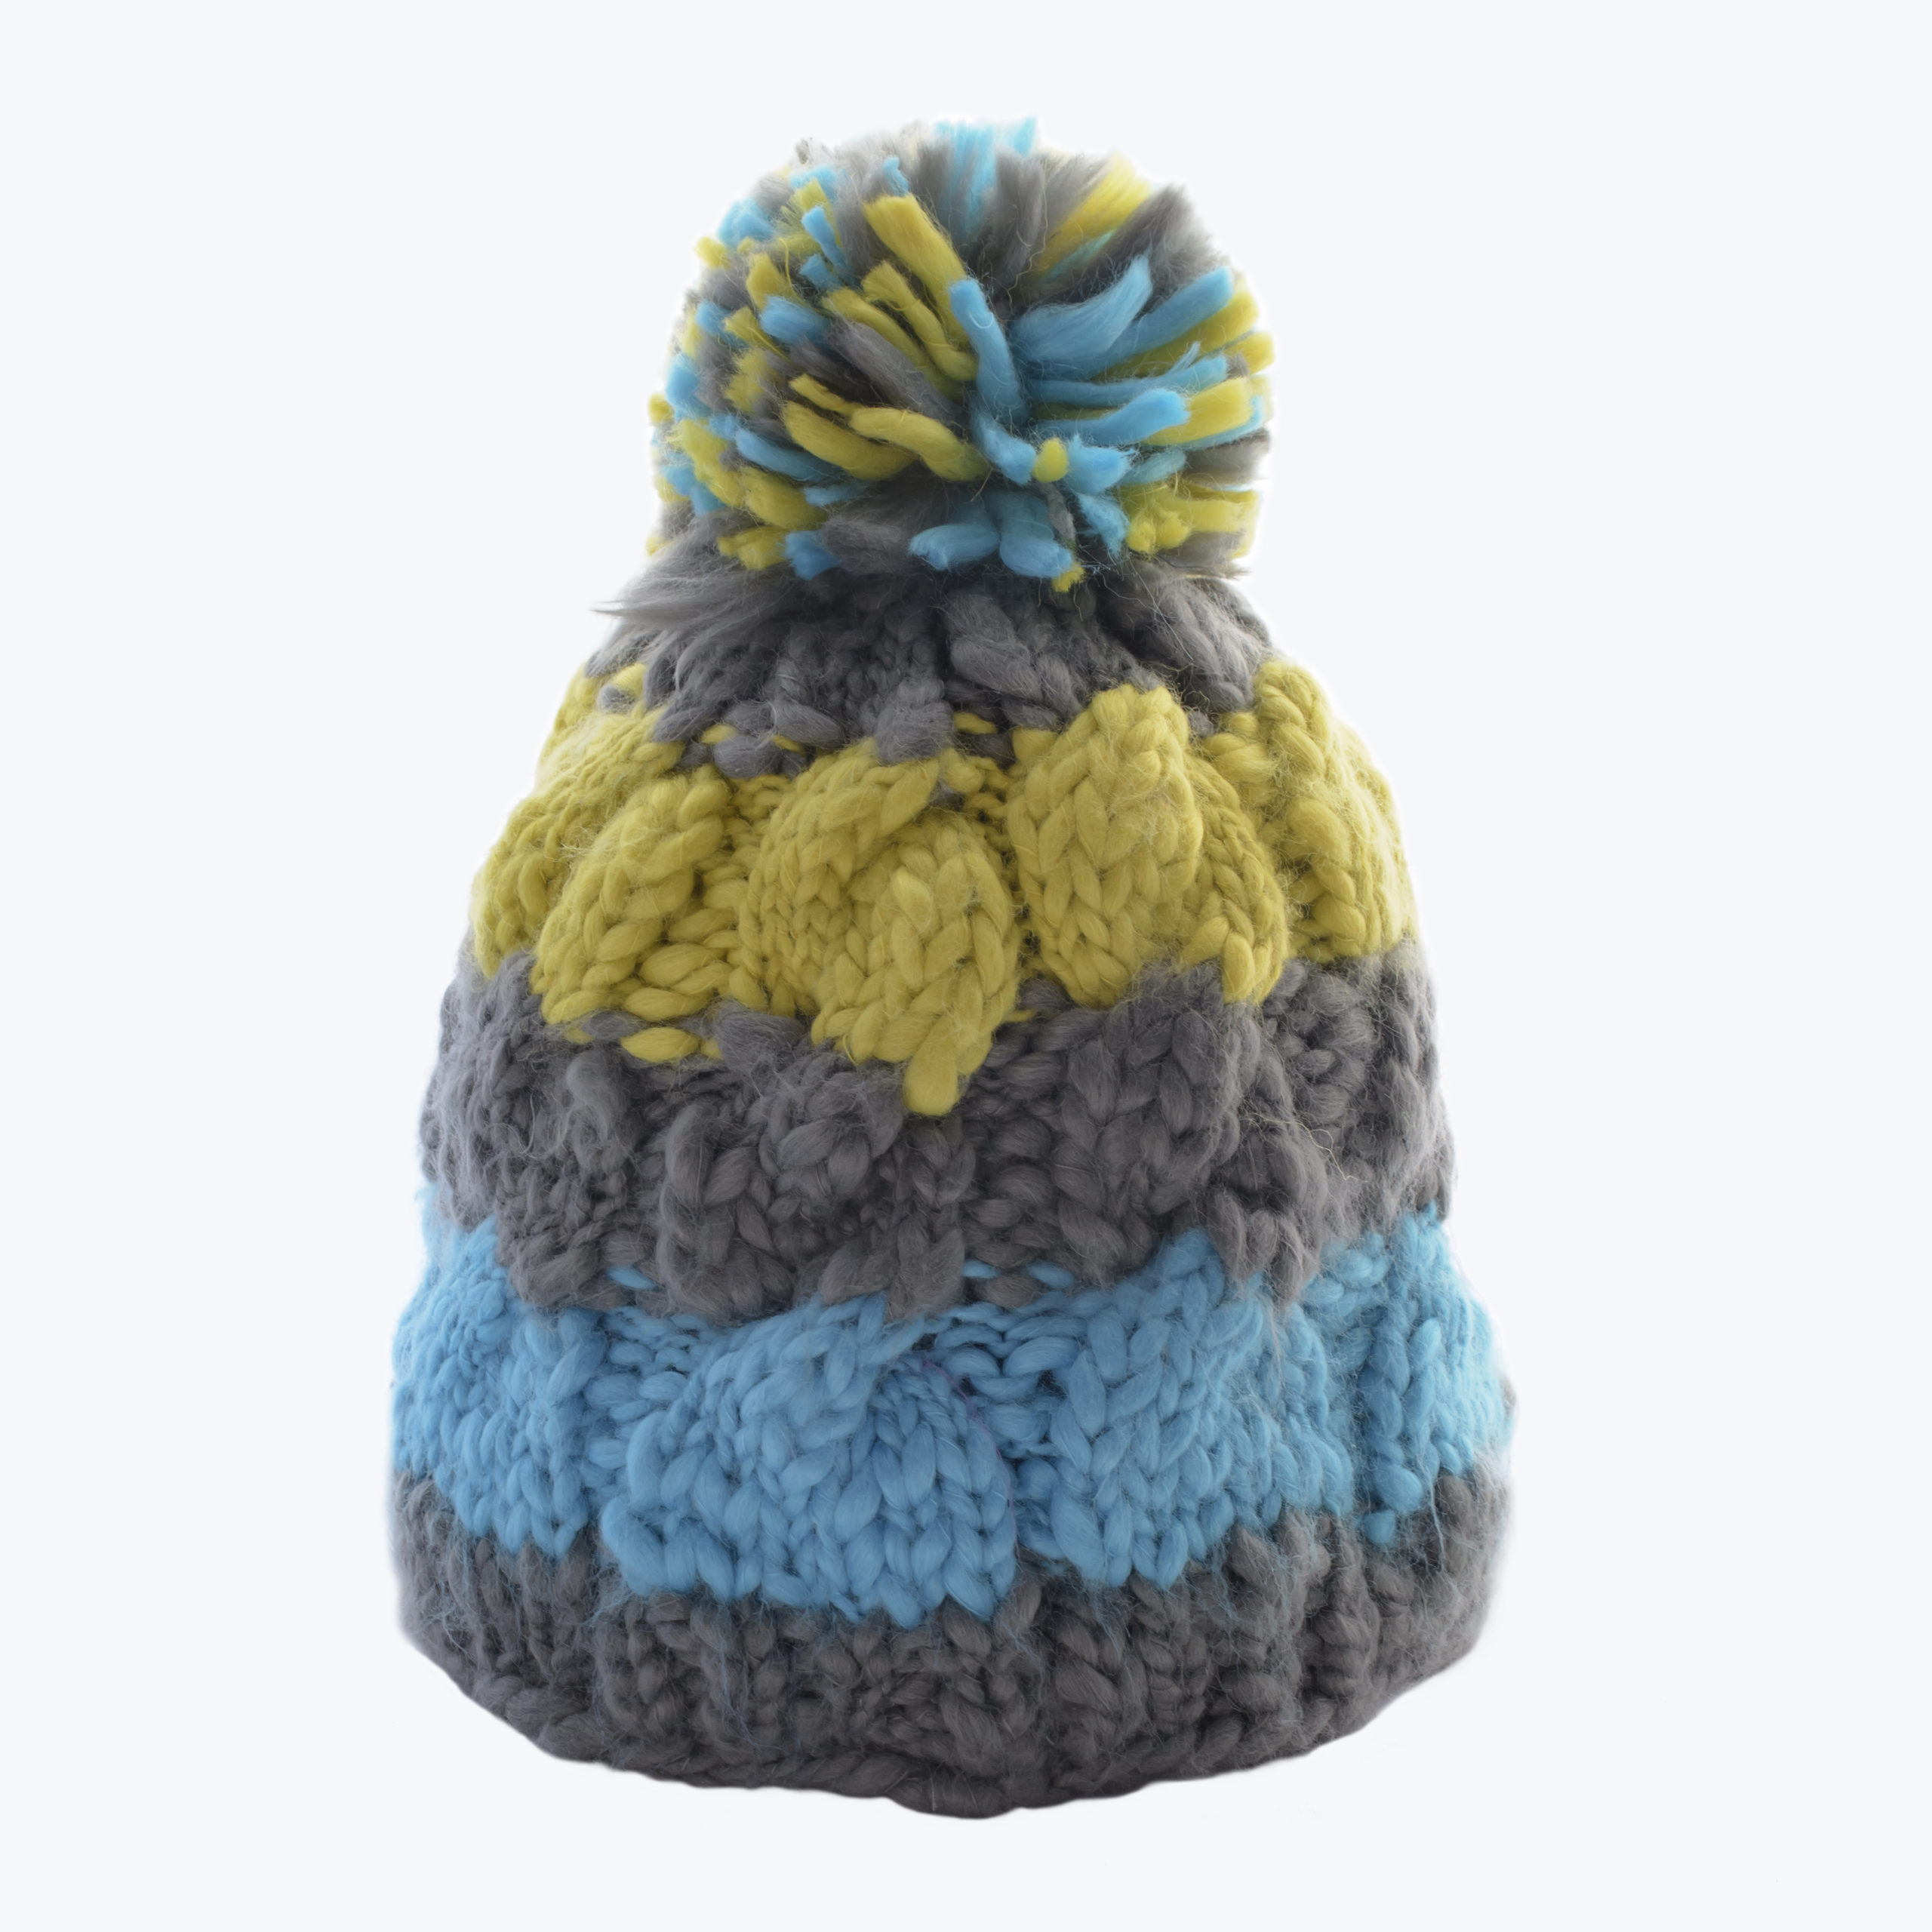 KID'S KNITTED BEANIE-GREY/BLUE